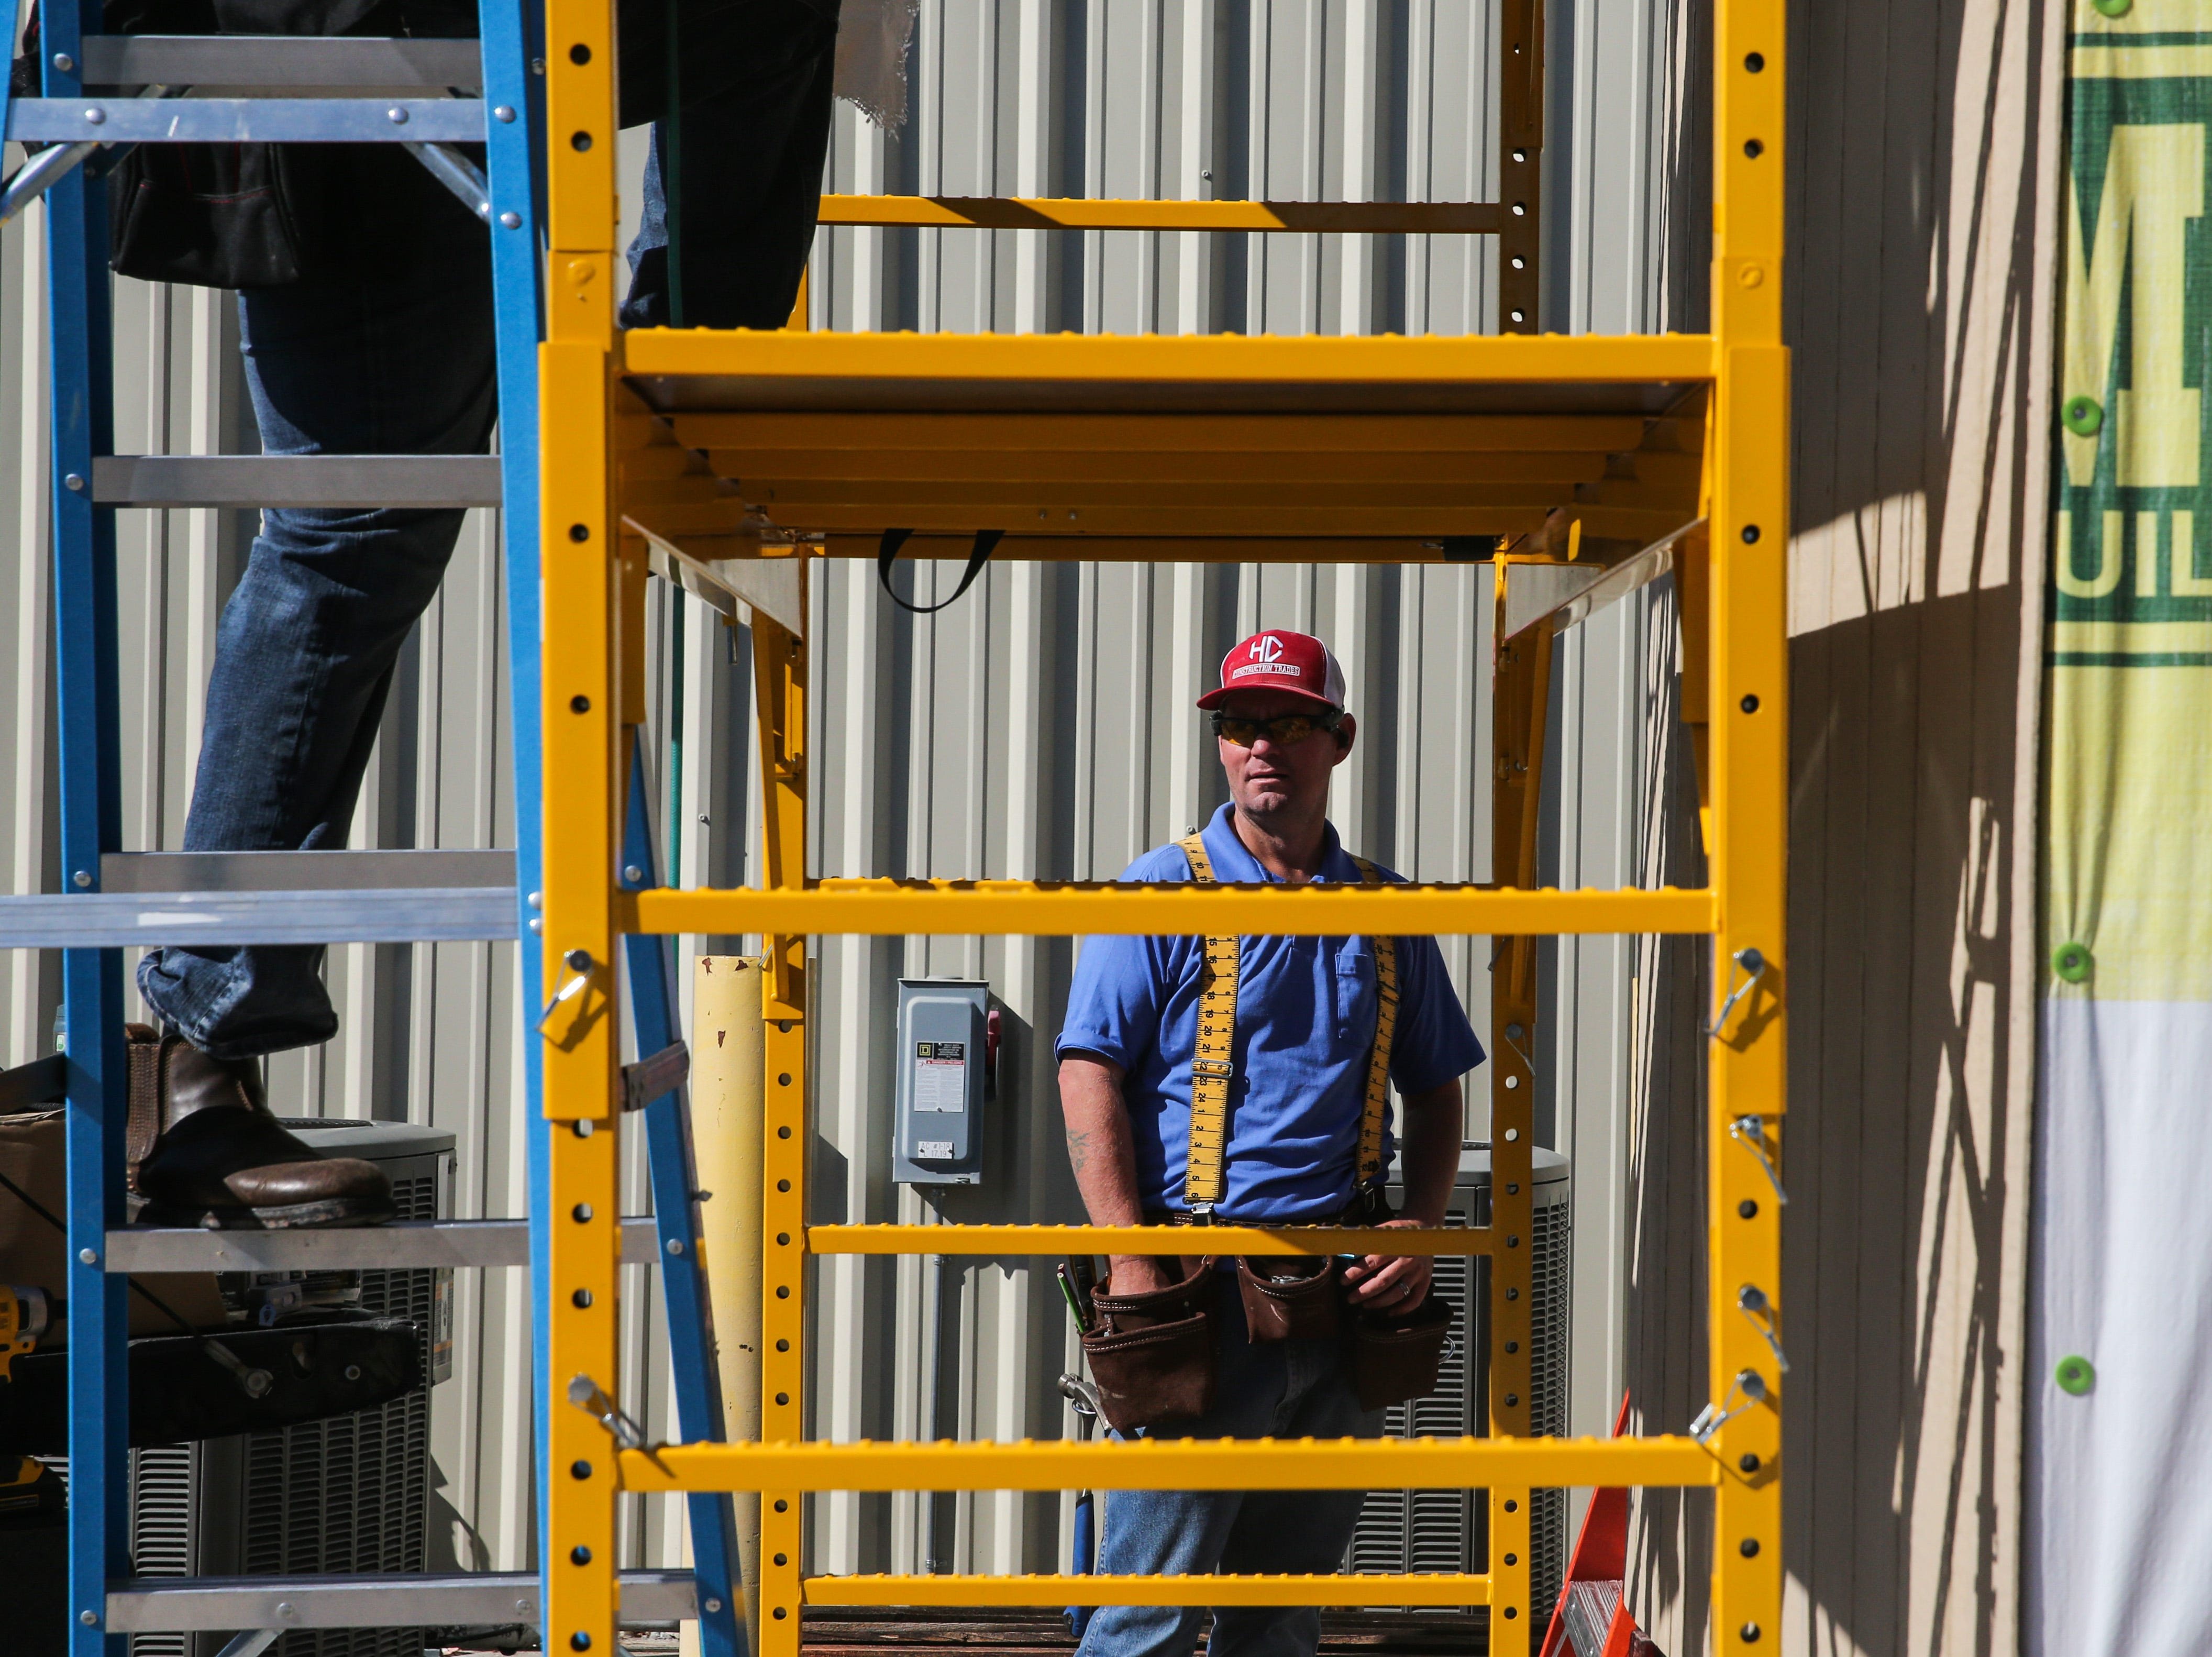 Casey Armor looks on as other students put up a panel on a tiny house project Thursday, April 25, 2019, at Howard College.